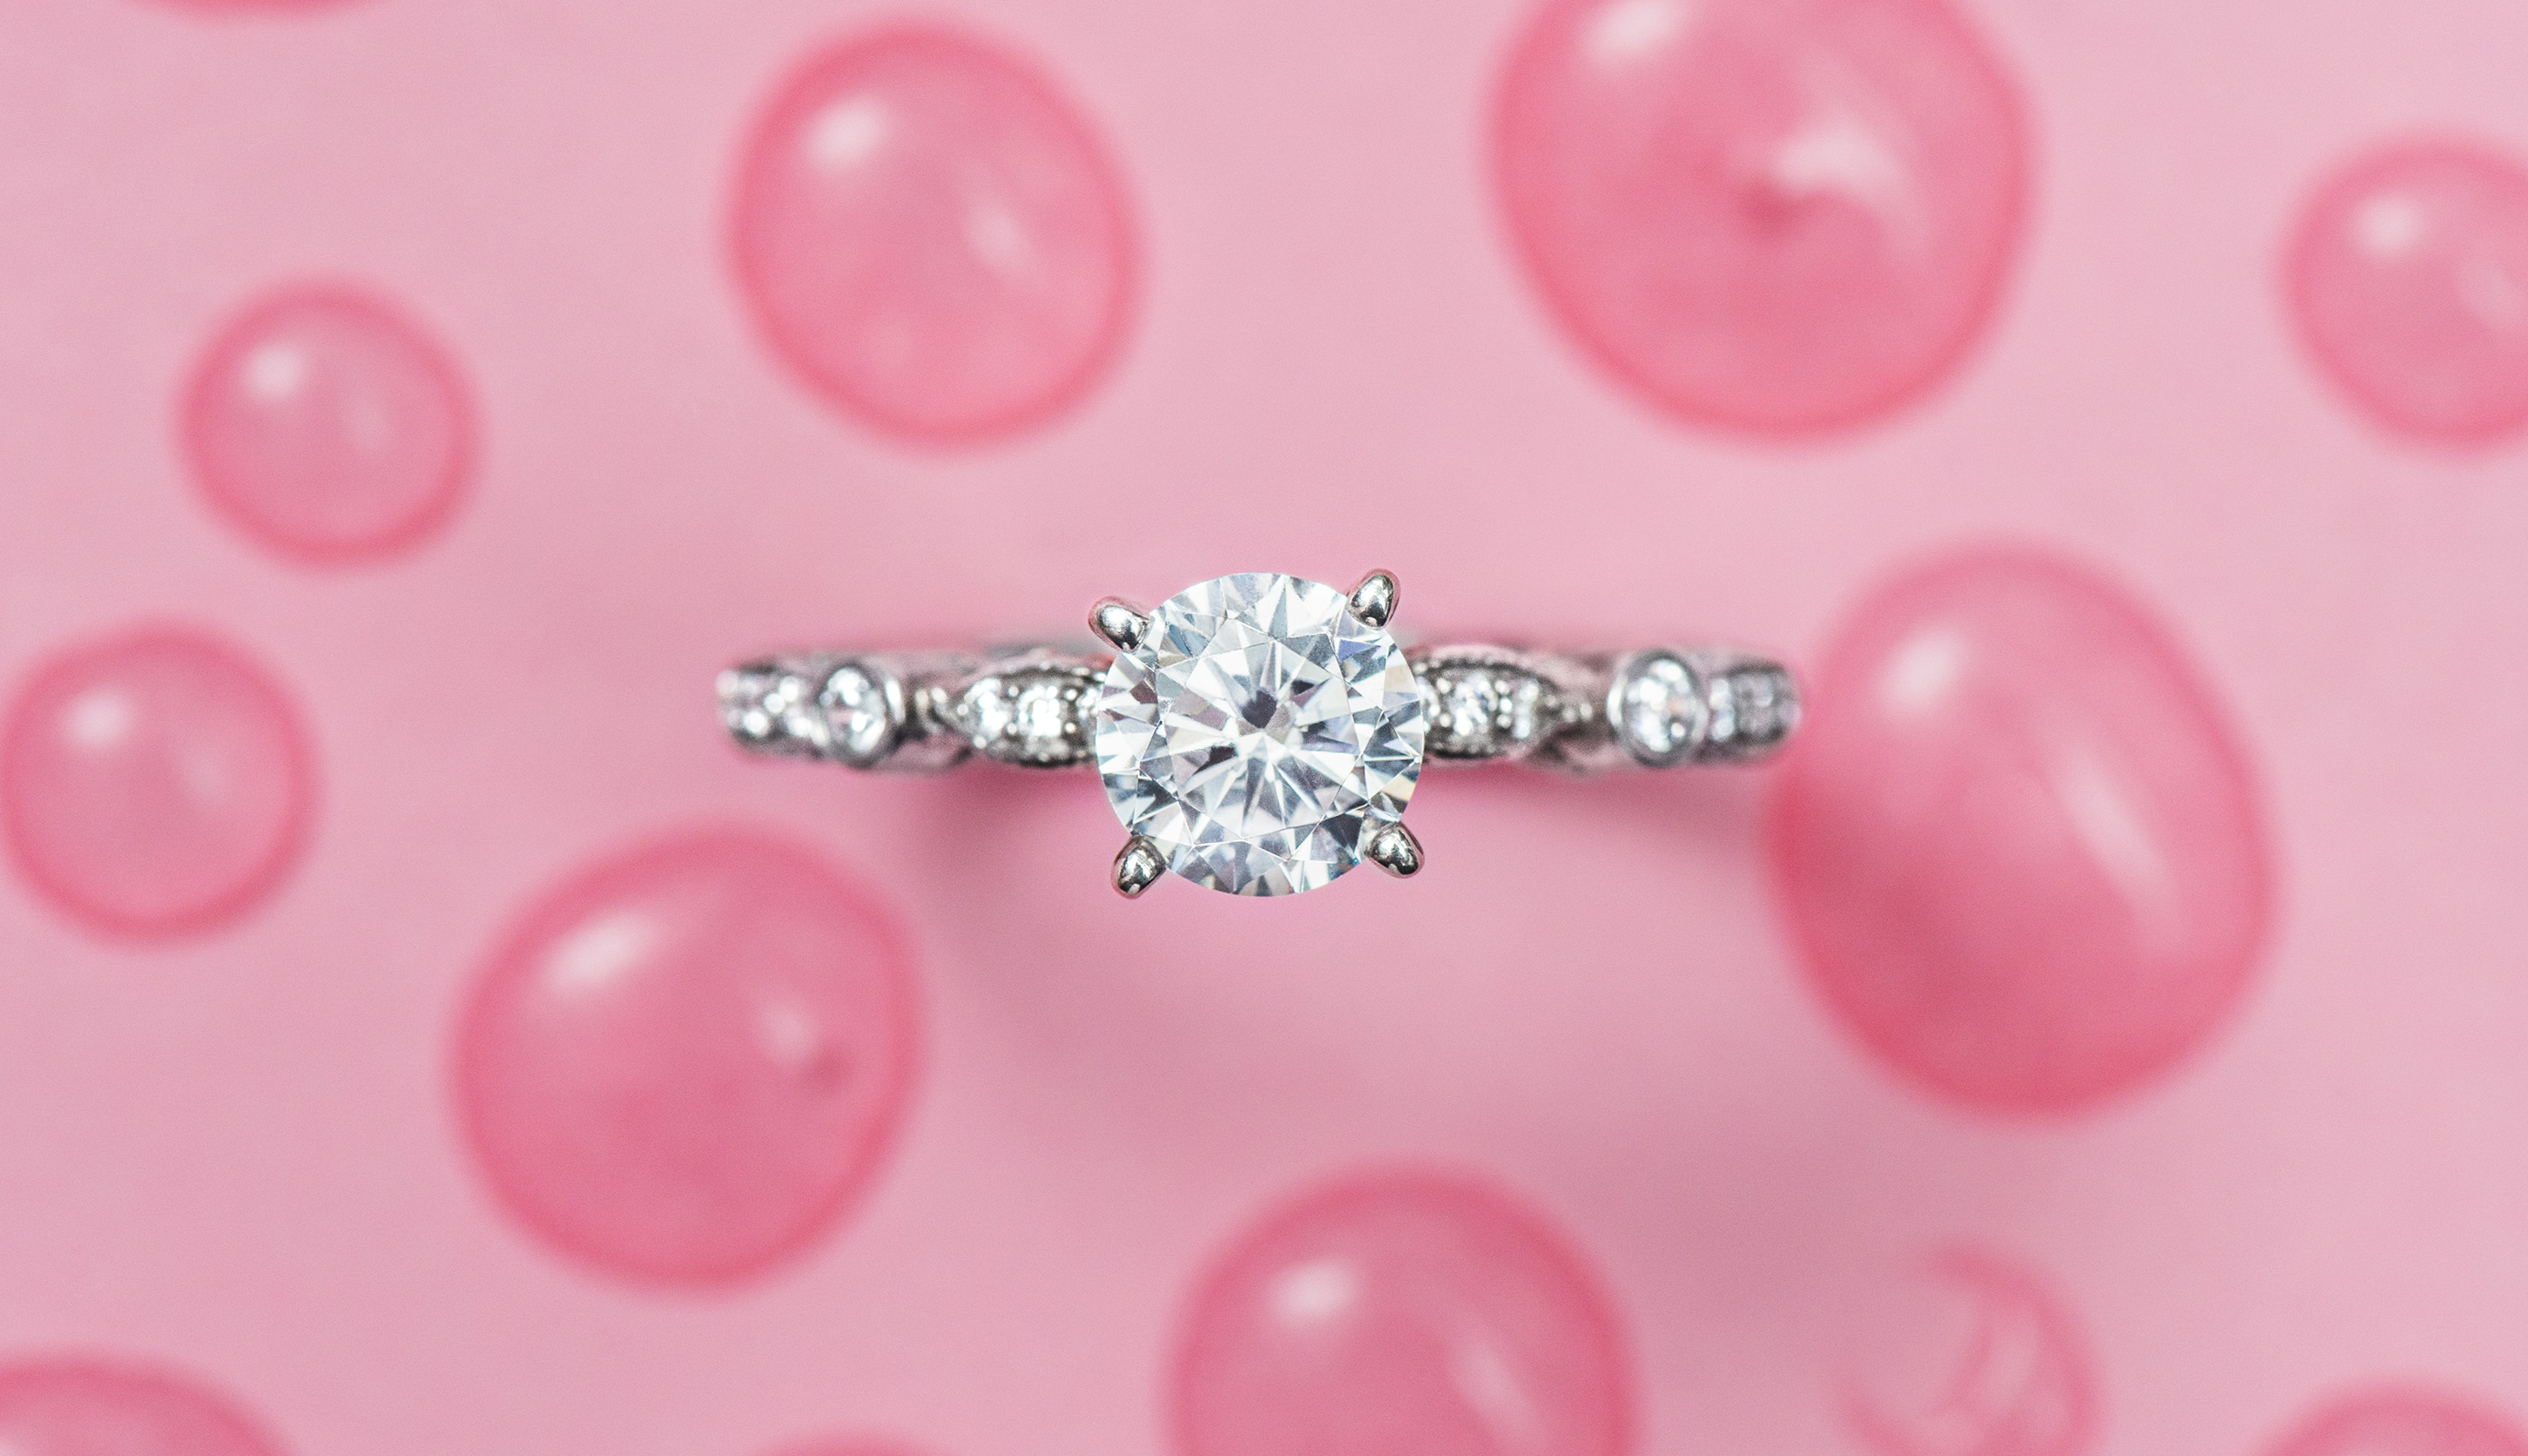 Round Cut Diamonds with Brilliant Sparkle - The James Allen Blog